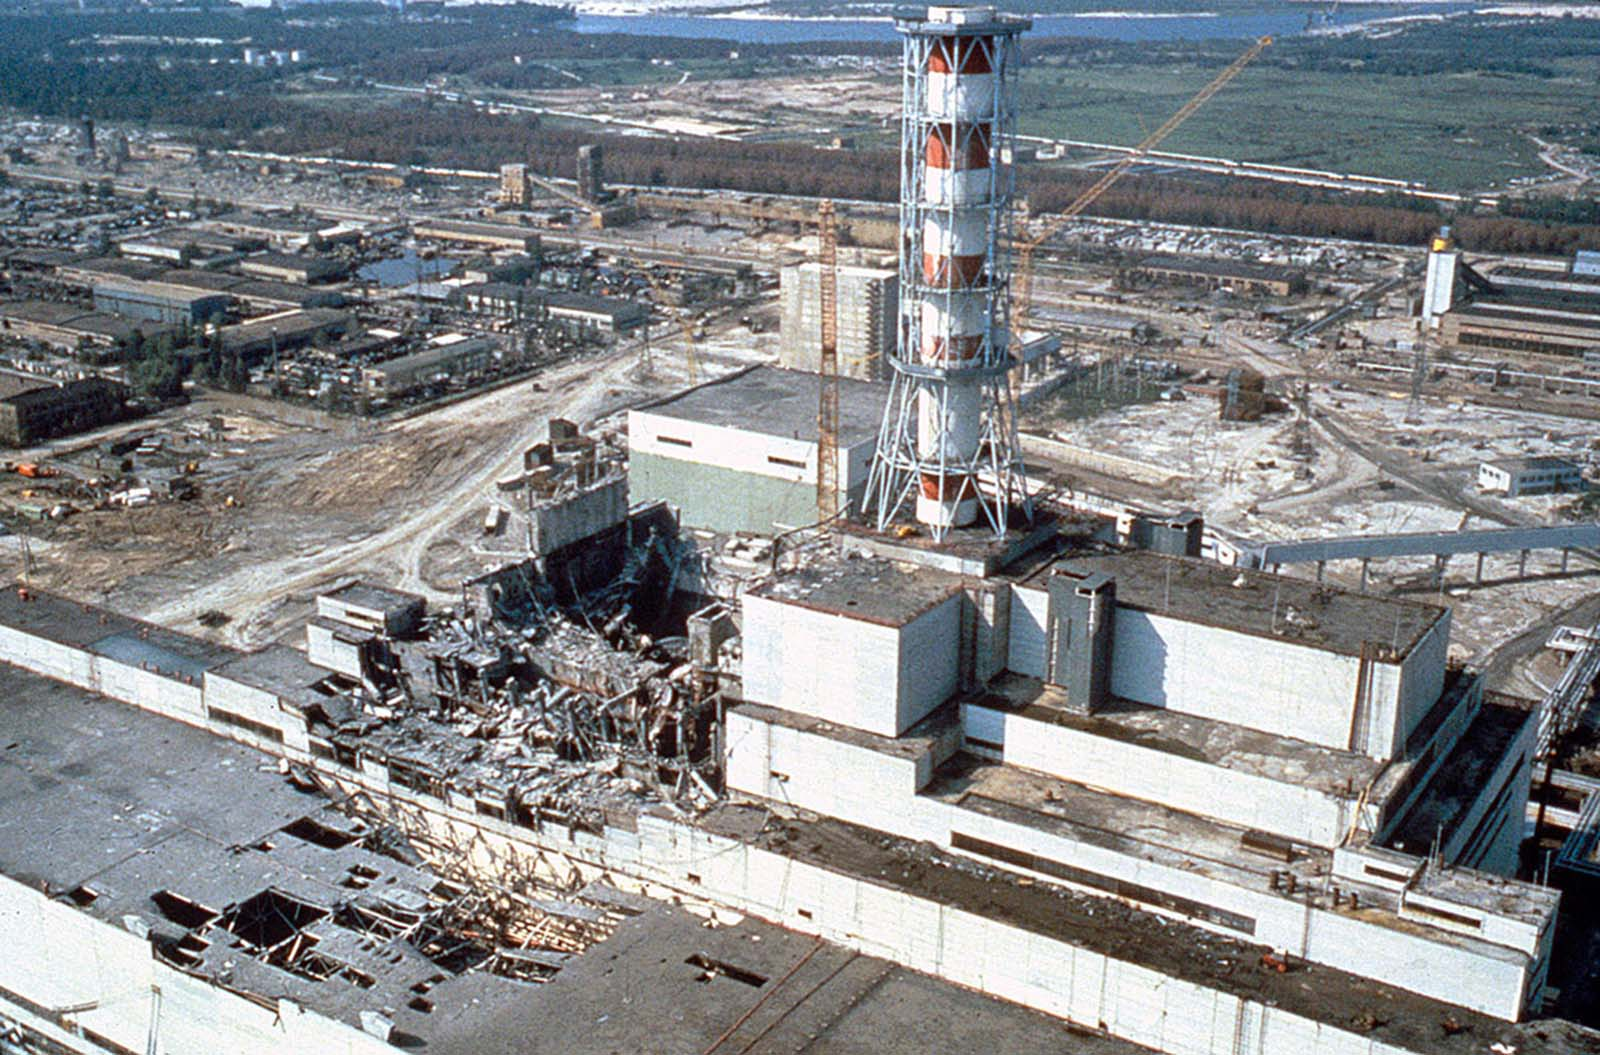 An aerial view of the damaged Chernobyl nuclear-power plant, photographed a few weeks after the disaster, in May 1986.